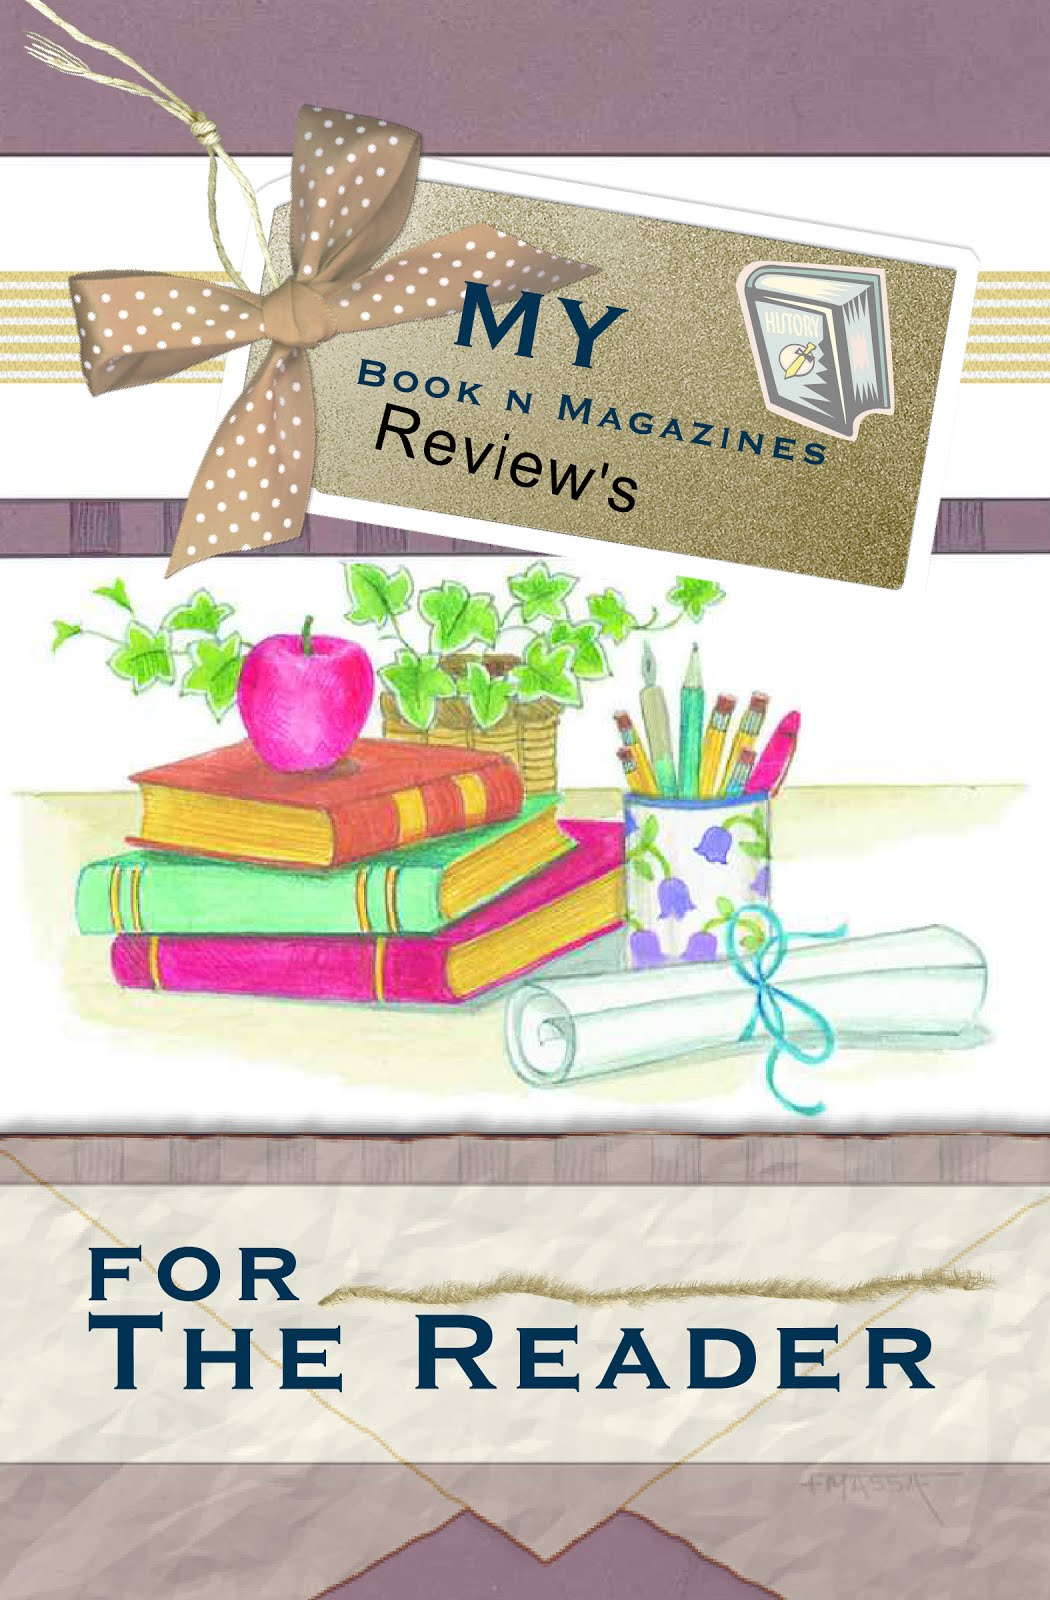 My Book and Magazine Reviews